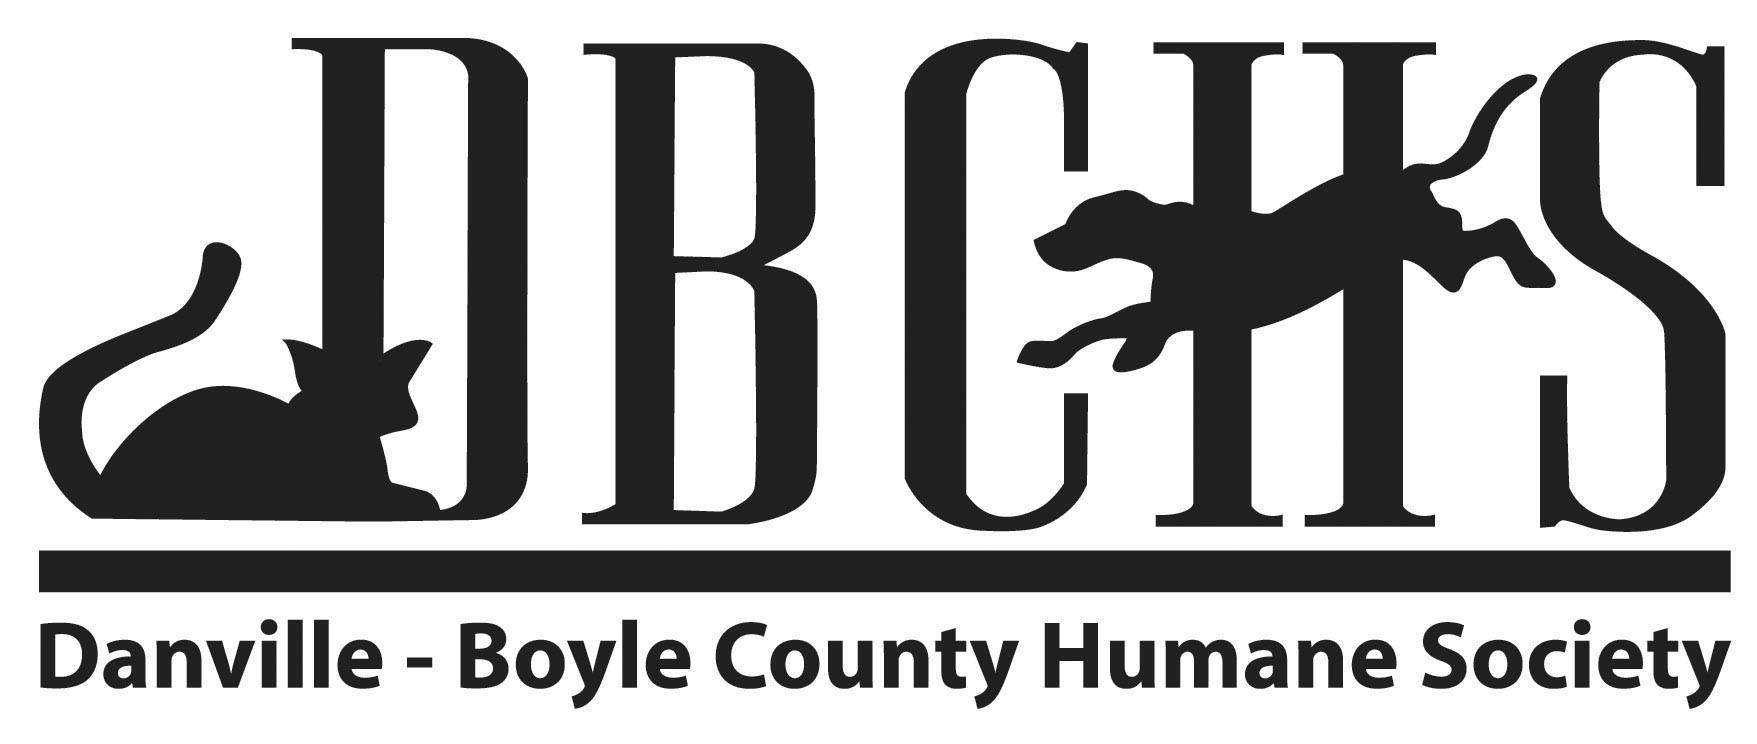 Danville - Boyle County Humane Society & Mutts With Manners